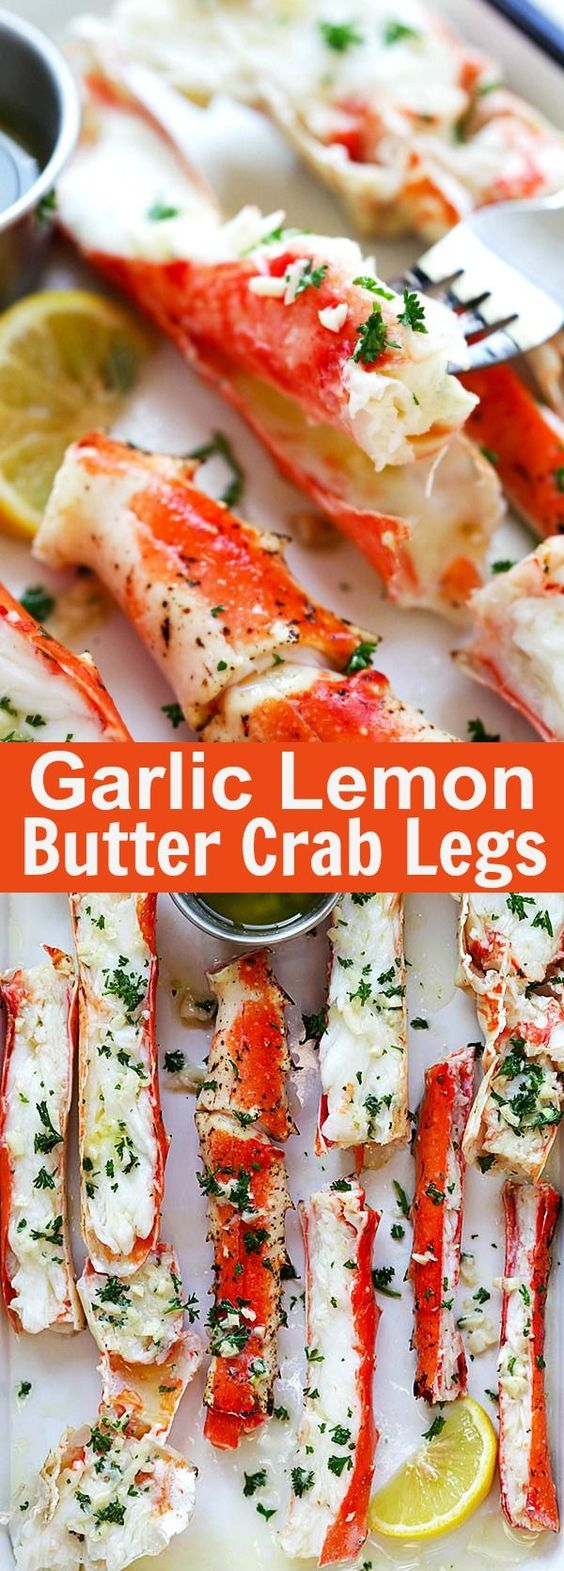 Garlic Lemon Butter Crab Legs Recipe